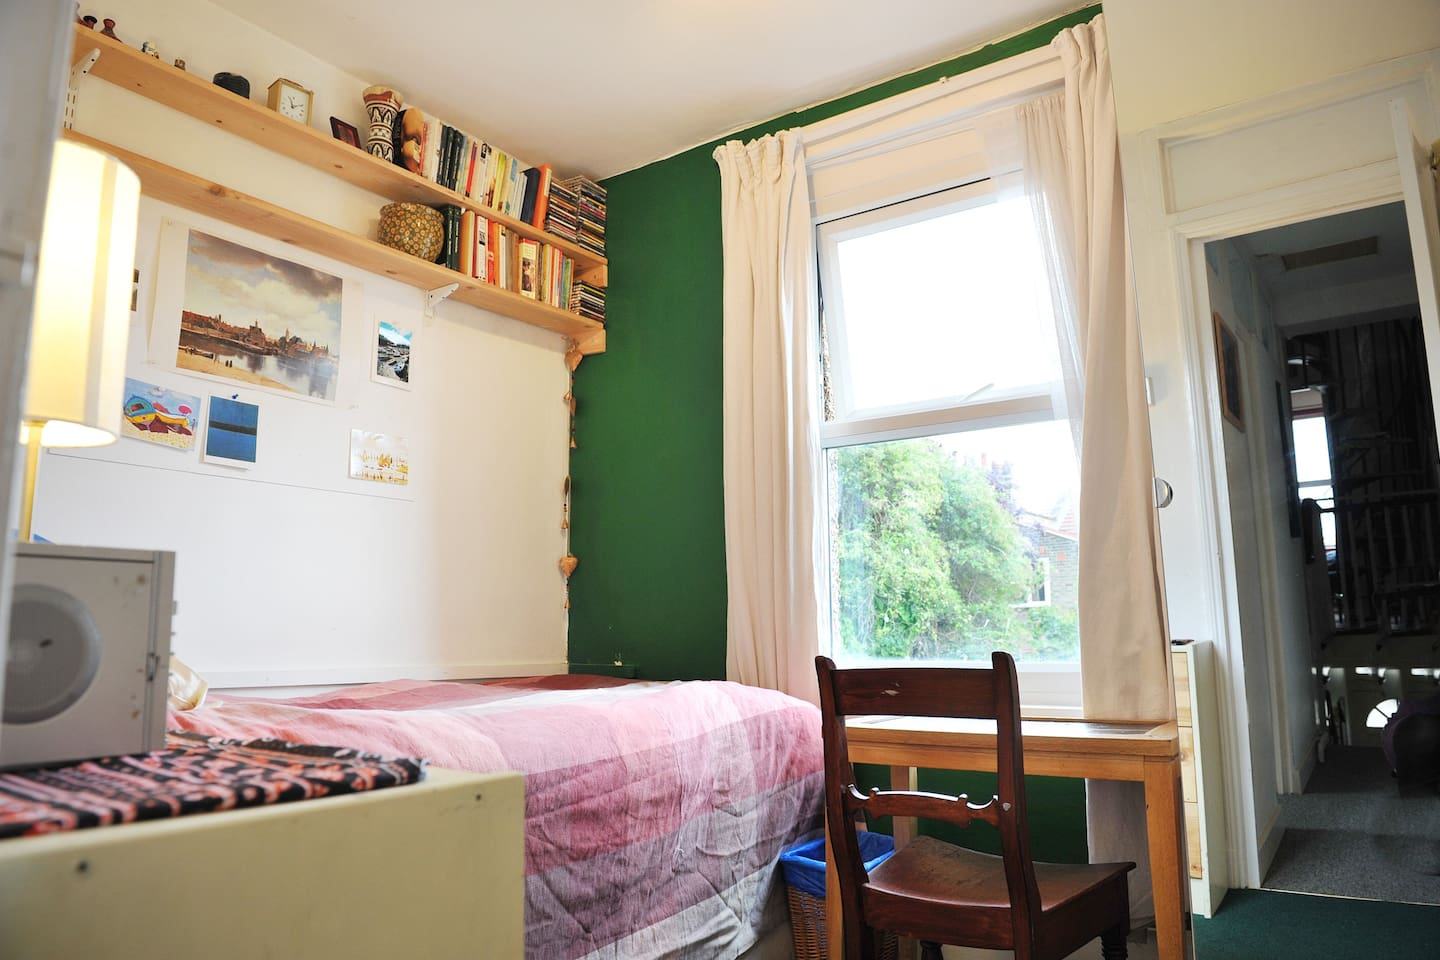 Single room for £28 with breakfast